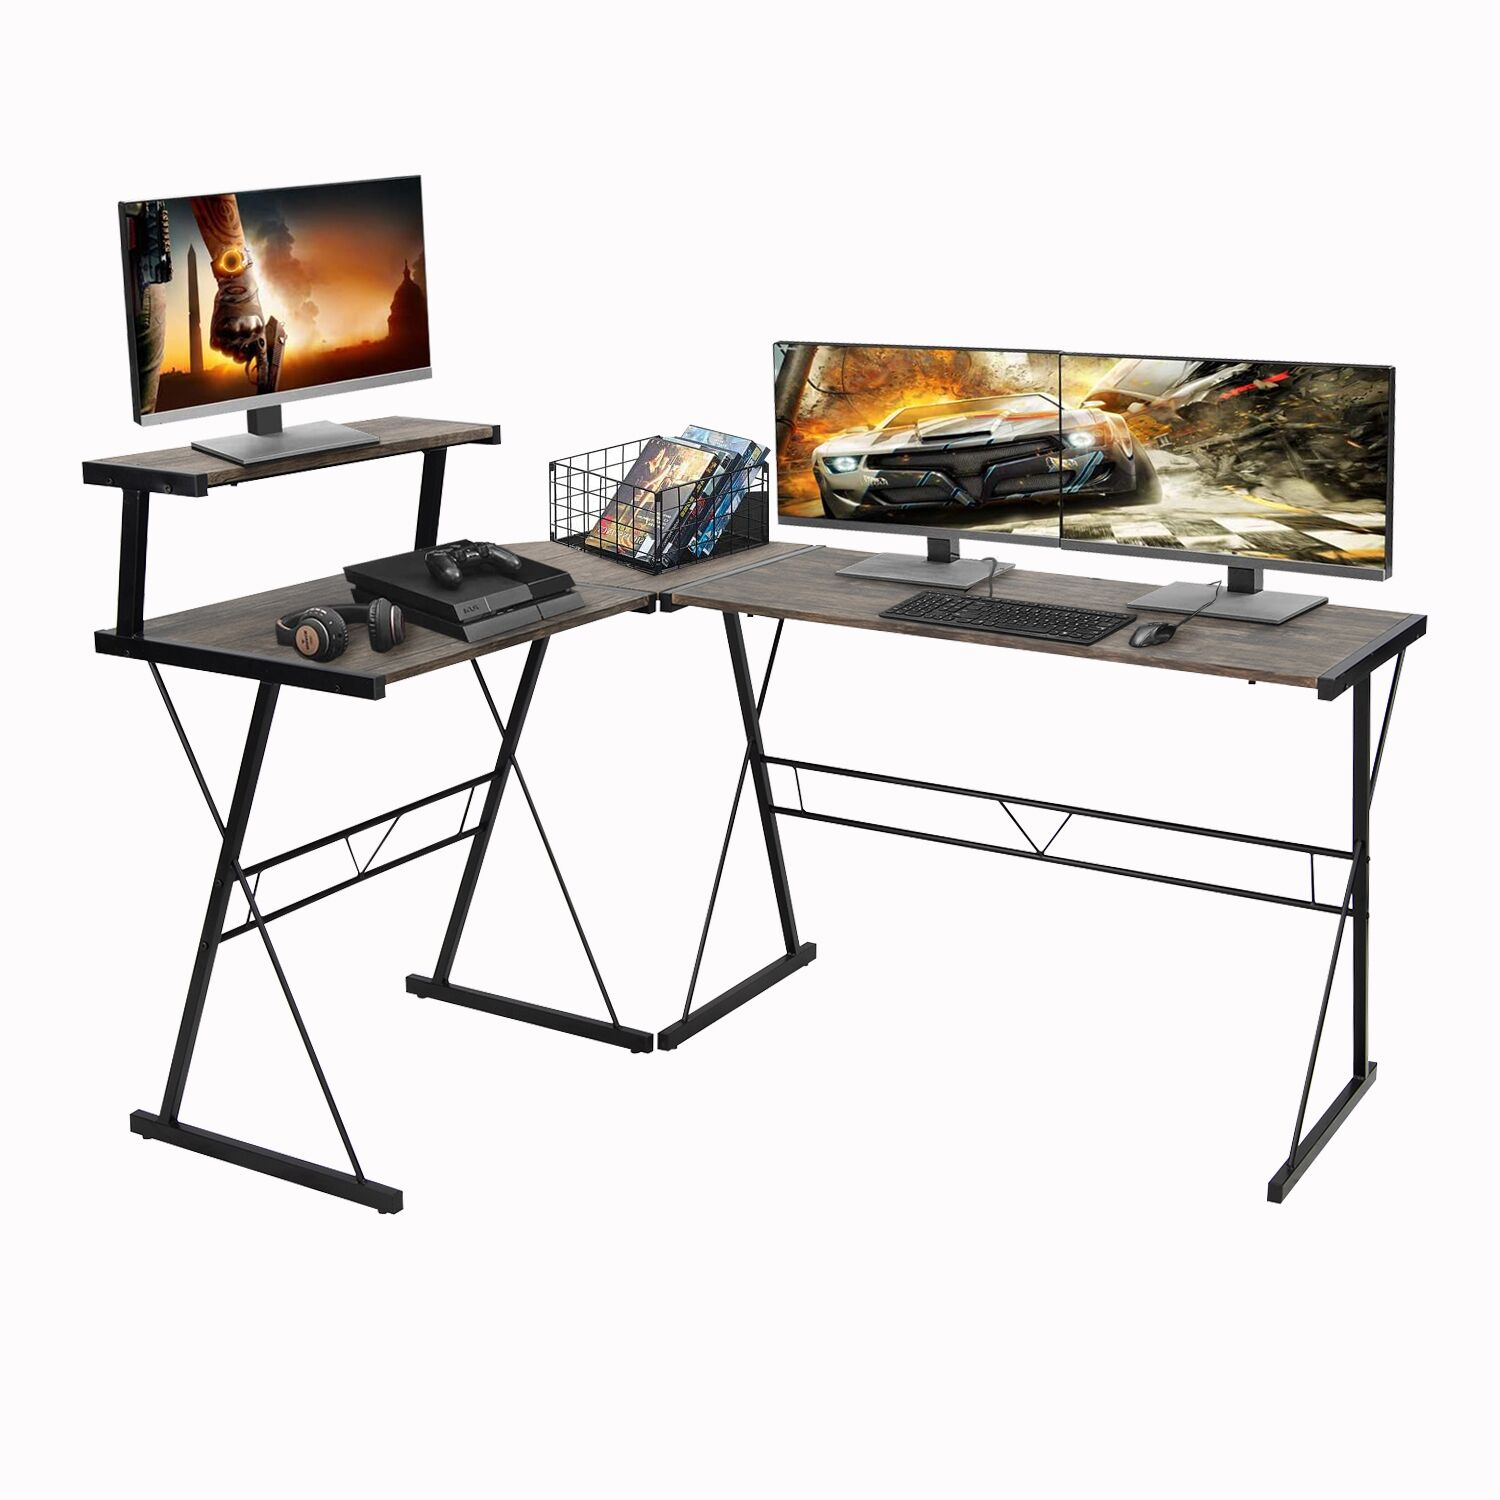 Aingoo L Shaped Corner Desk Industrial Style Large Desktop Computer Gaming Desk For Home Office Brown Walmart Com Walmart Com